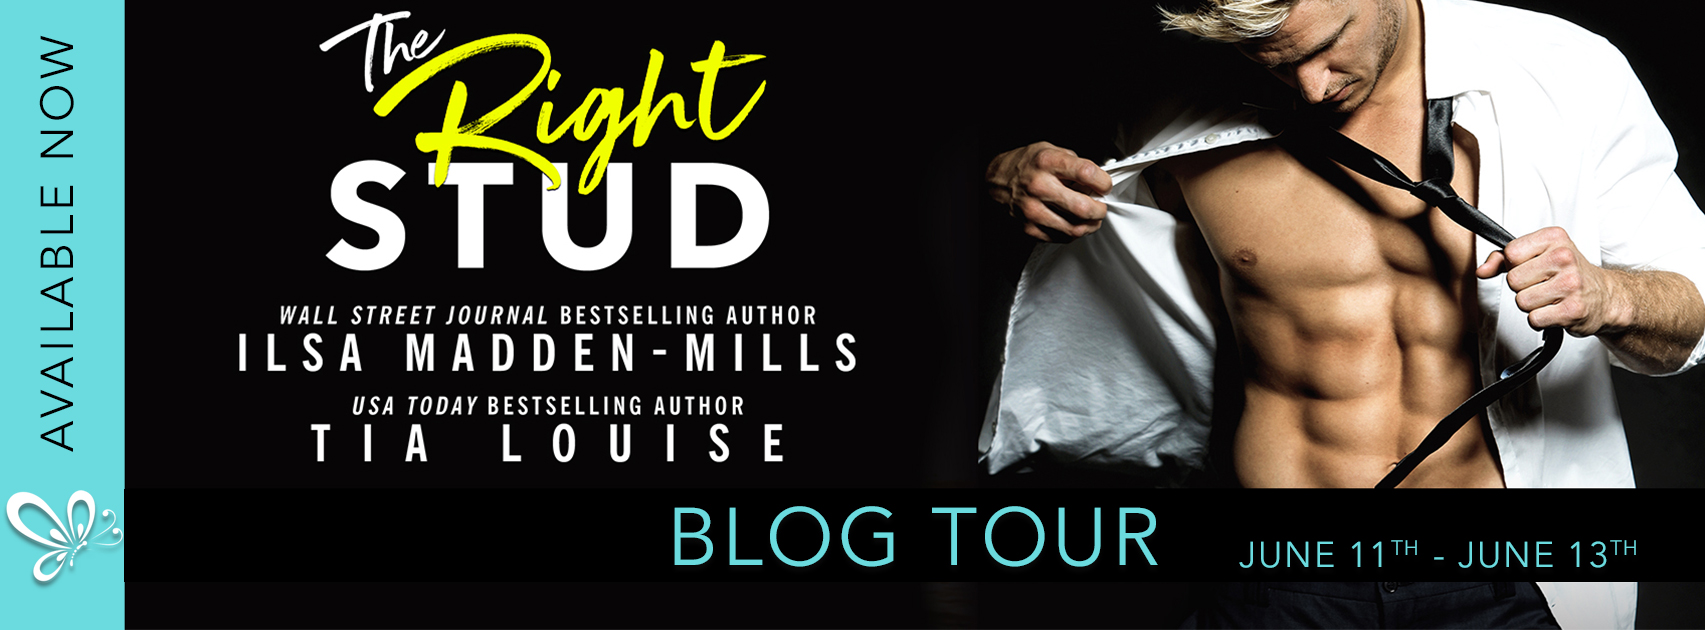 Blog Tour:  The Right Stud by Ilsa Madden-Mills and Tia Louise